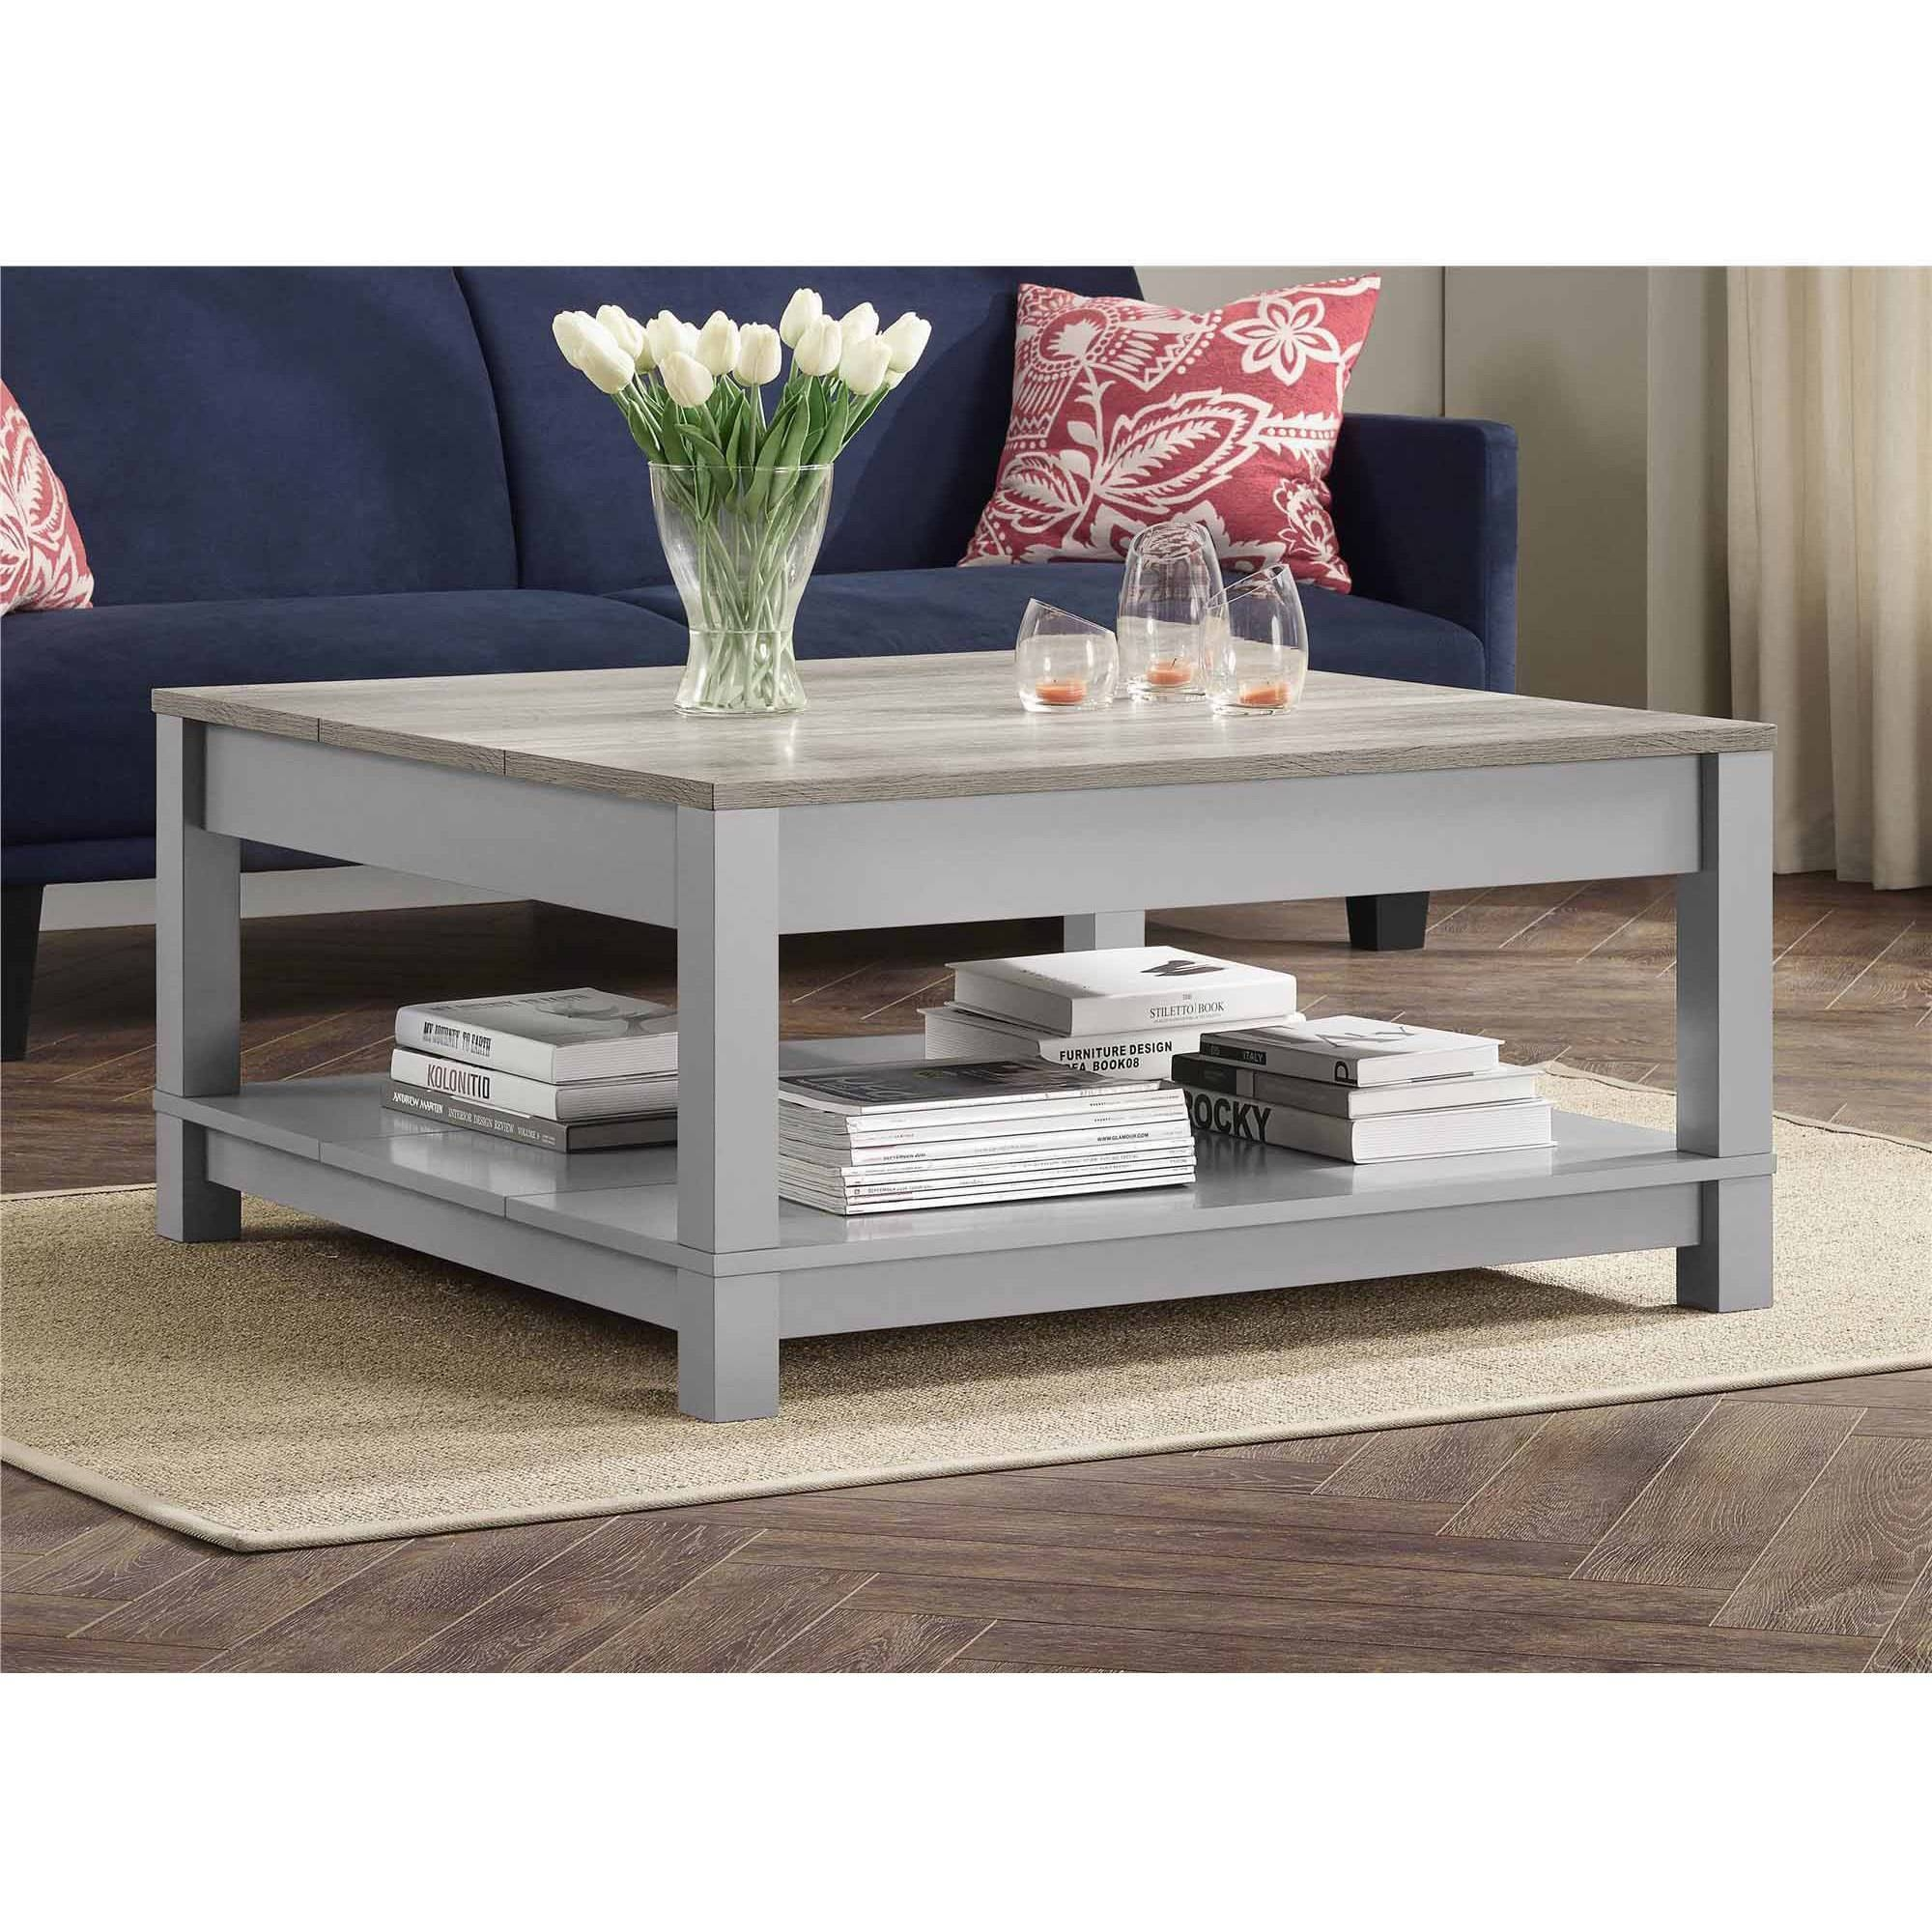 Living Room: Alluring Design Of Coffee Table Walmart For intended for Grey Coffee Table Sets (Image 25 of 30)